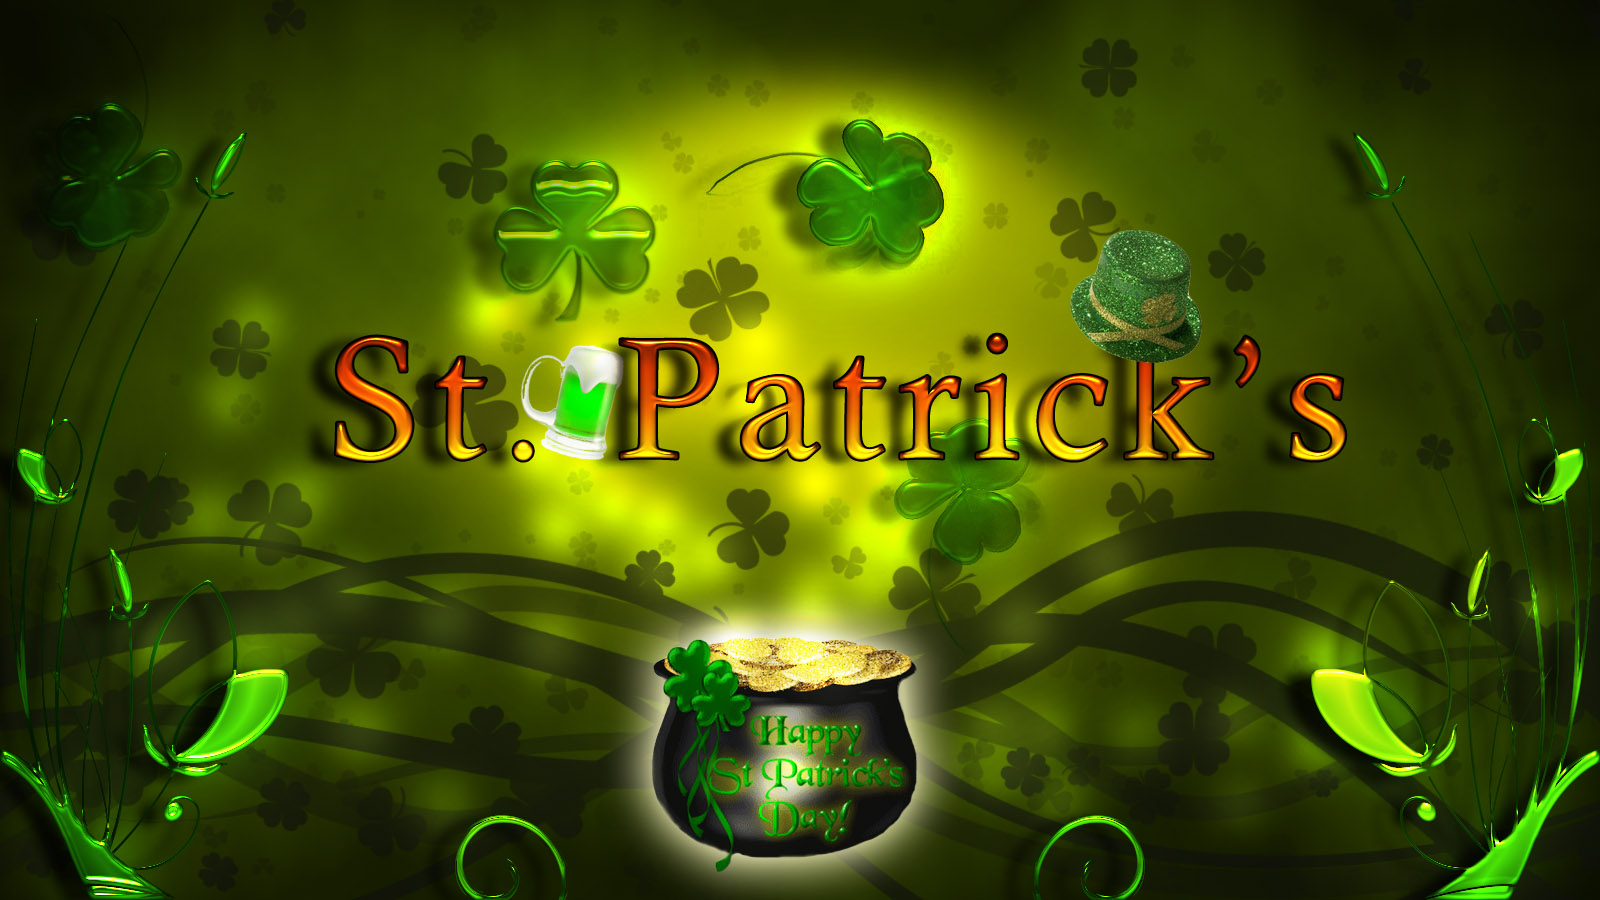 Free Download St Patricks Day 1600x900 For Your Desktop Mobile